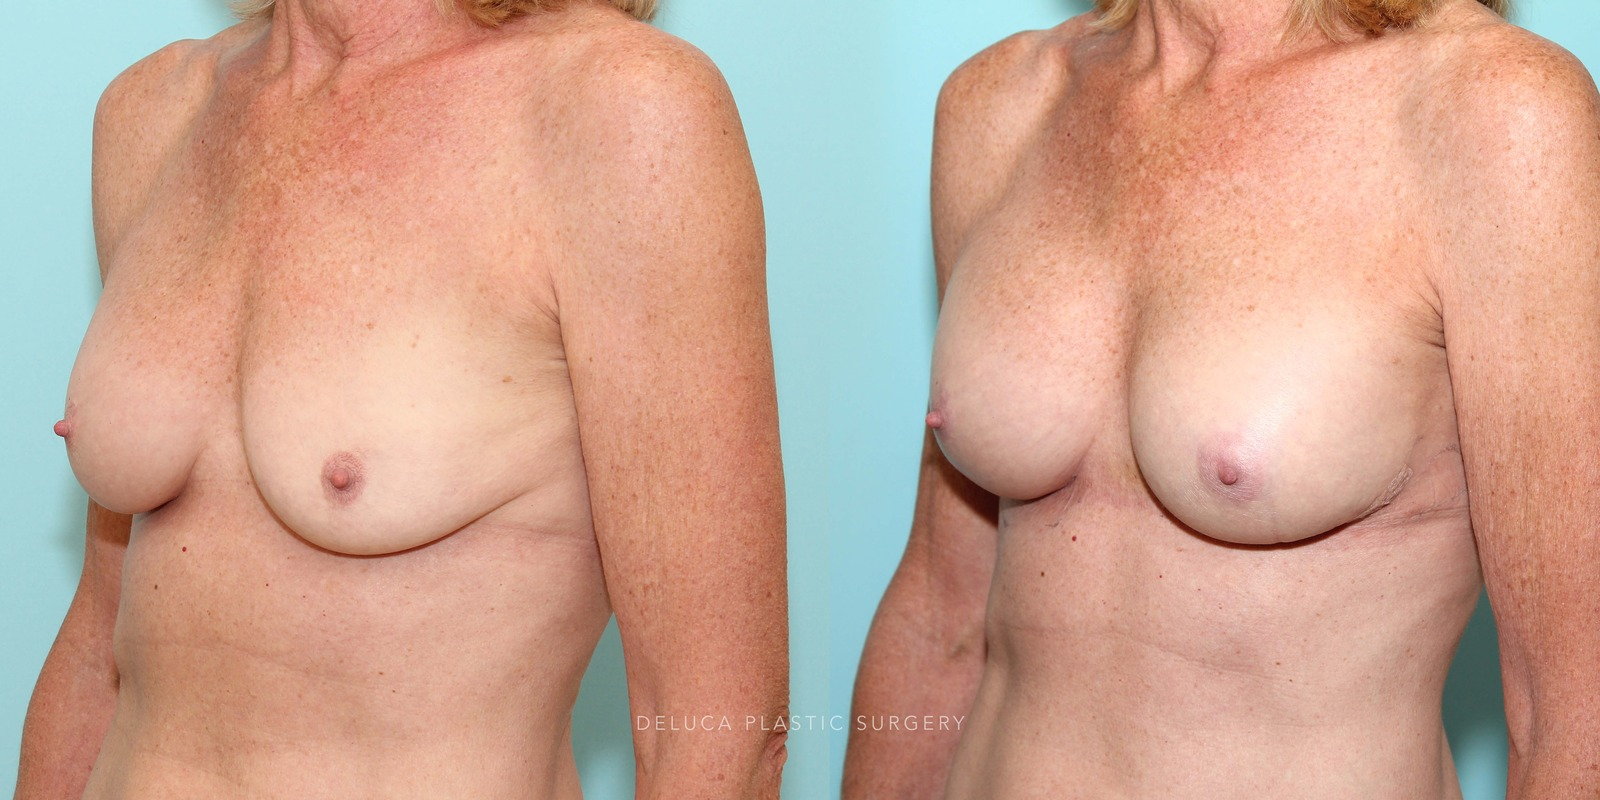 61 Year Old Secondary Asymmetric Breast Augmentation Silicone Implants